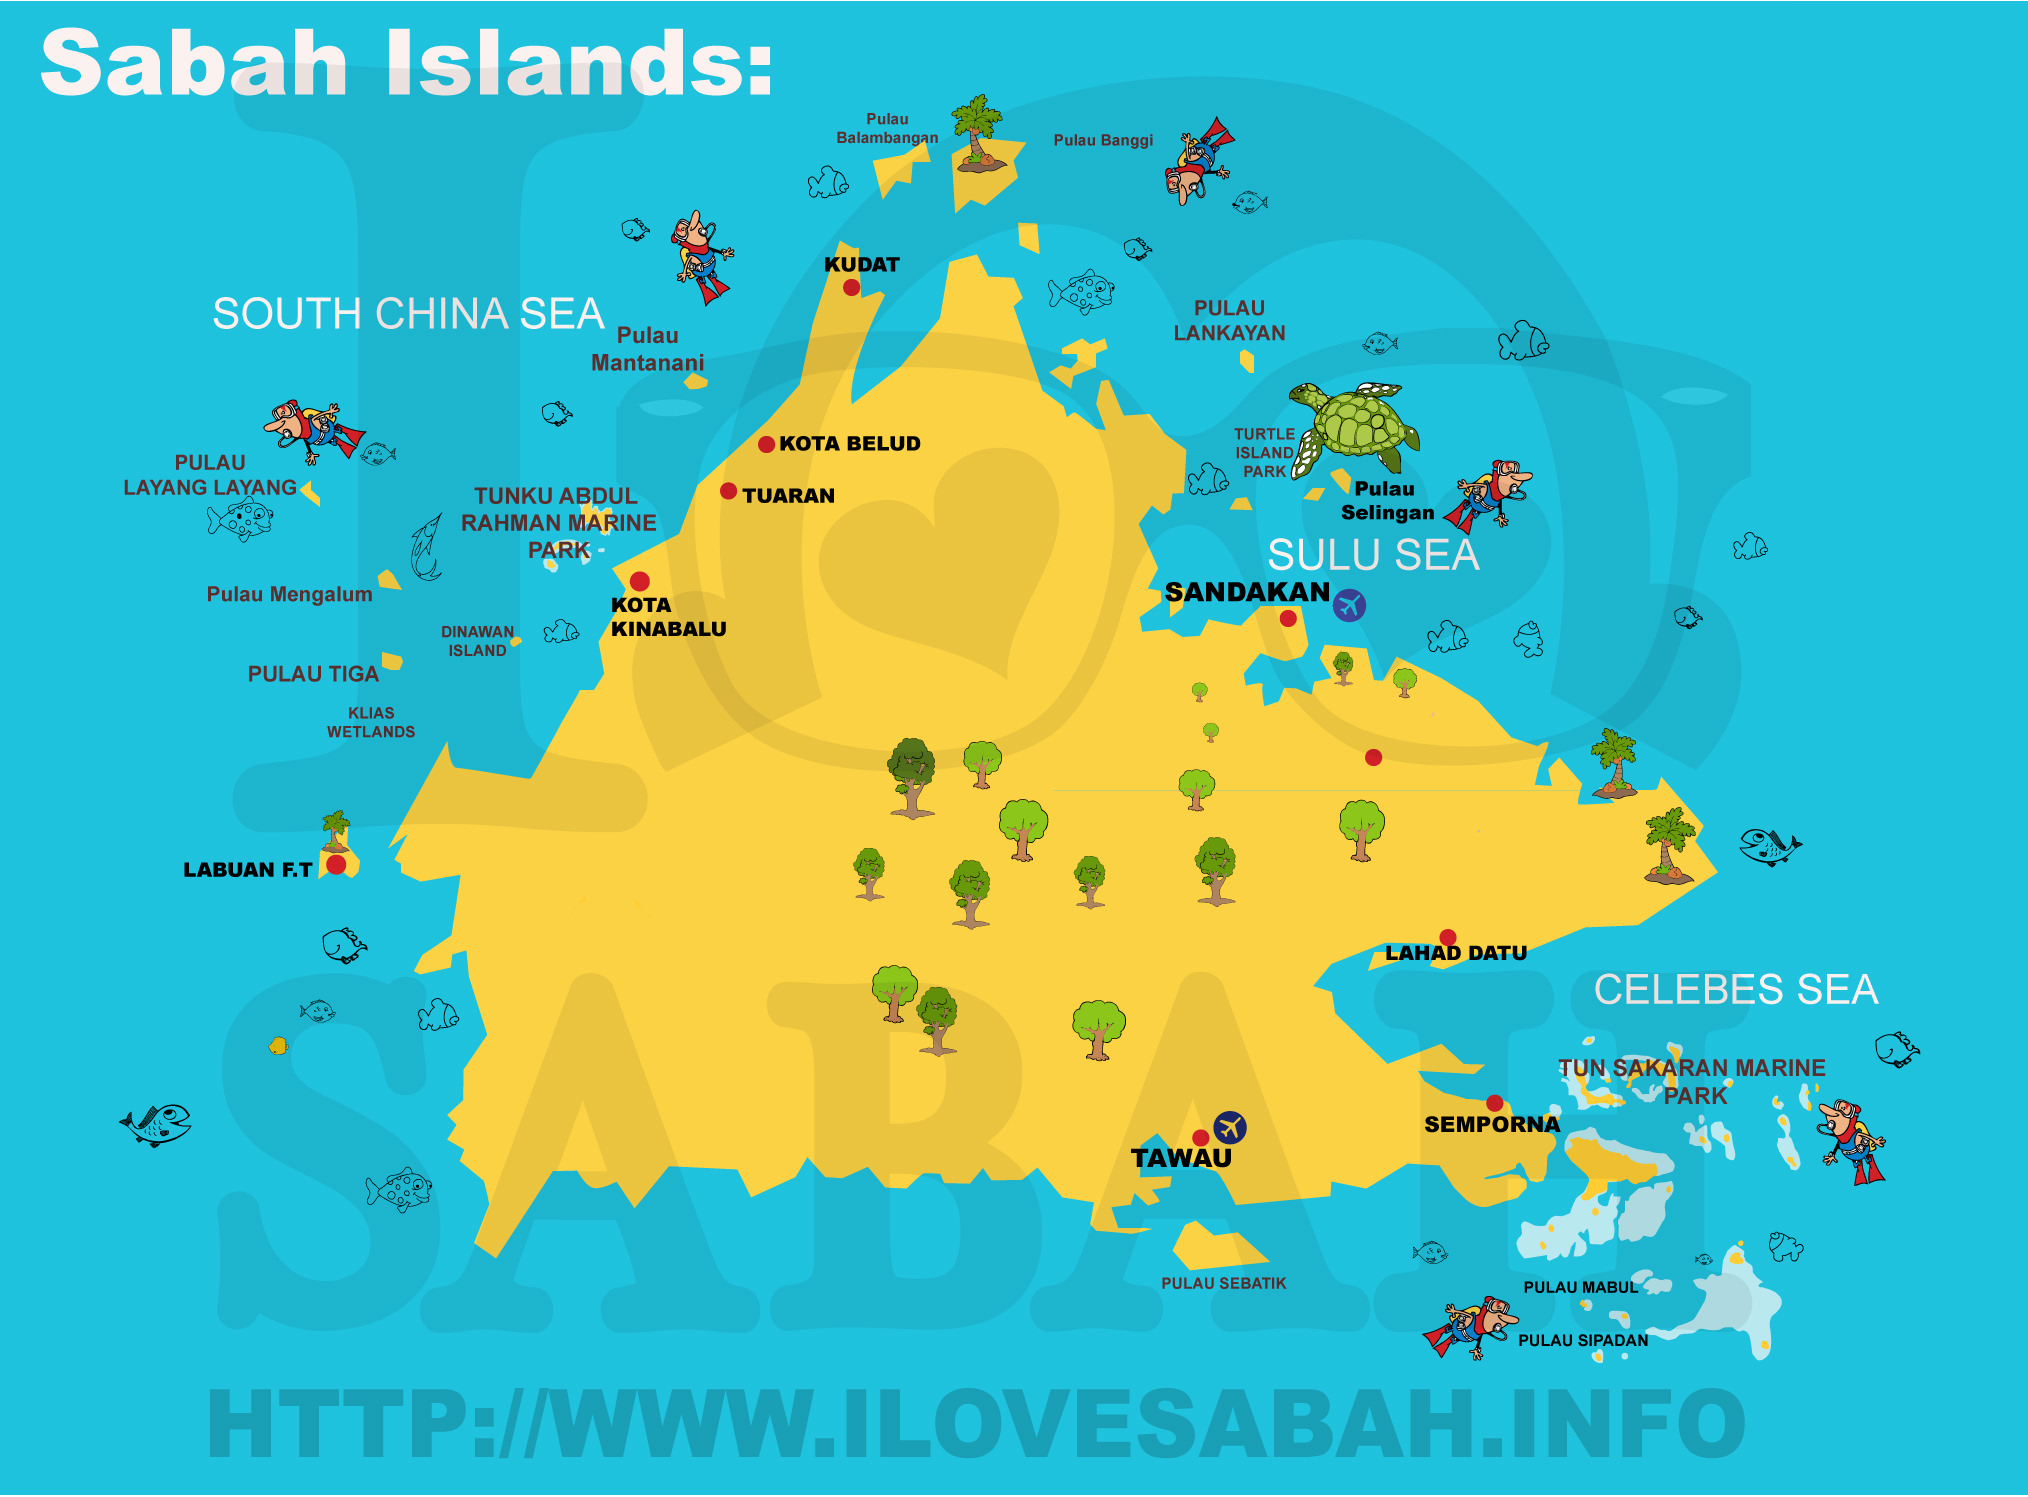 Map Of Sabah Islands